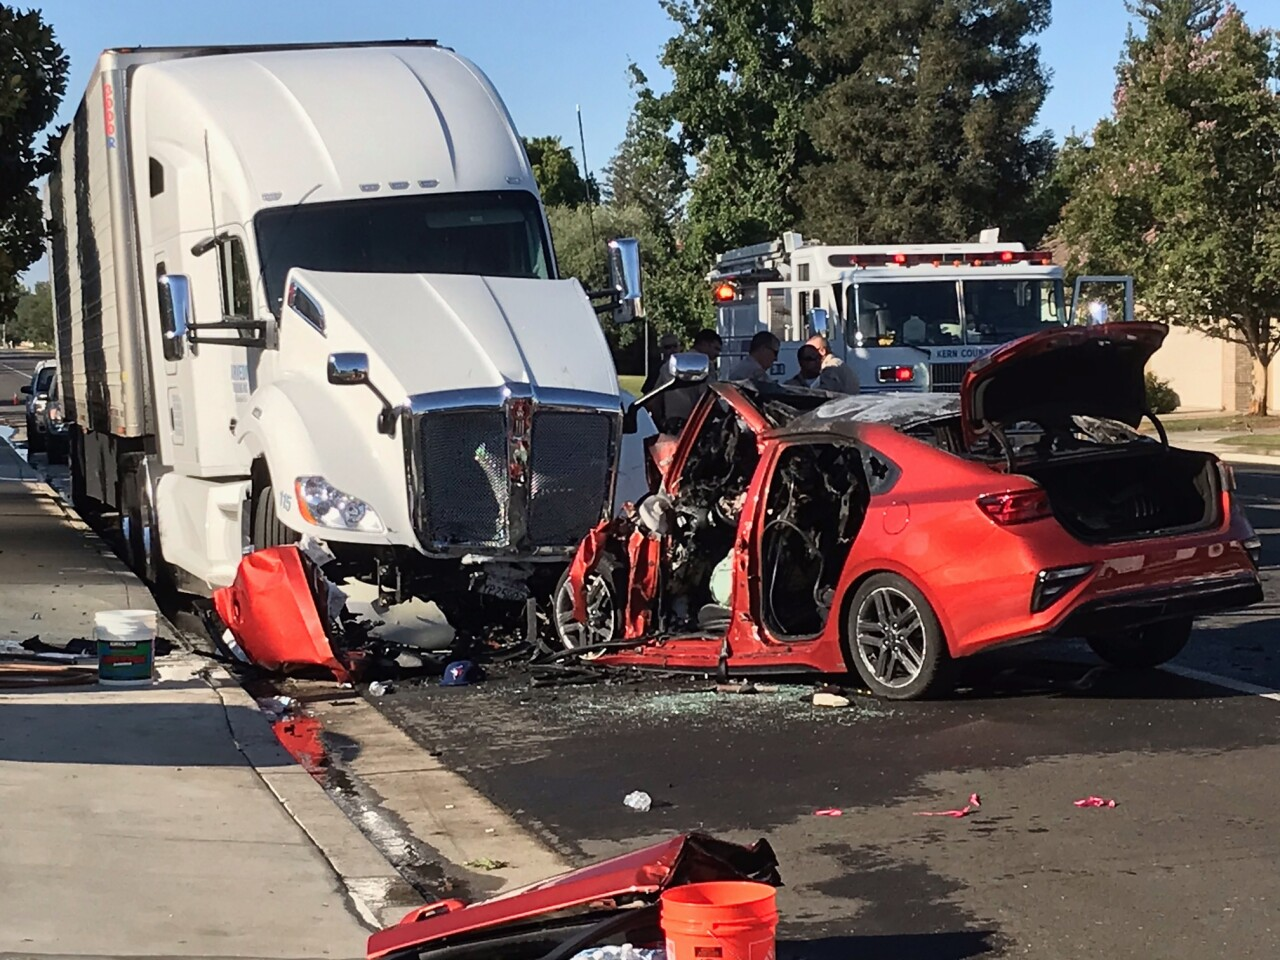 Palm Ave Accident, July 4, 2021